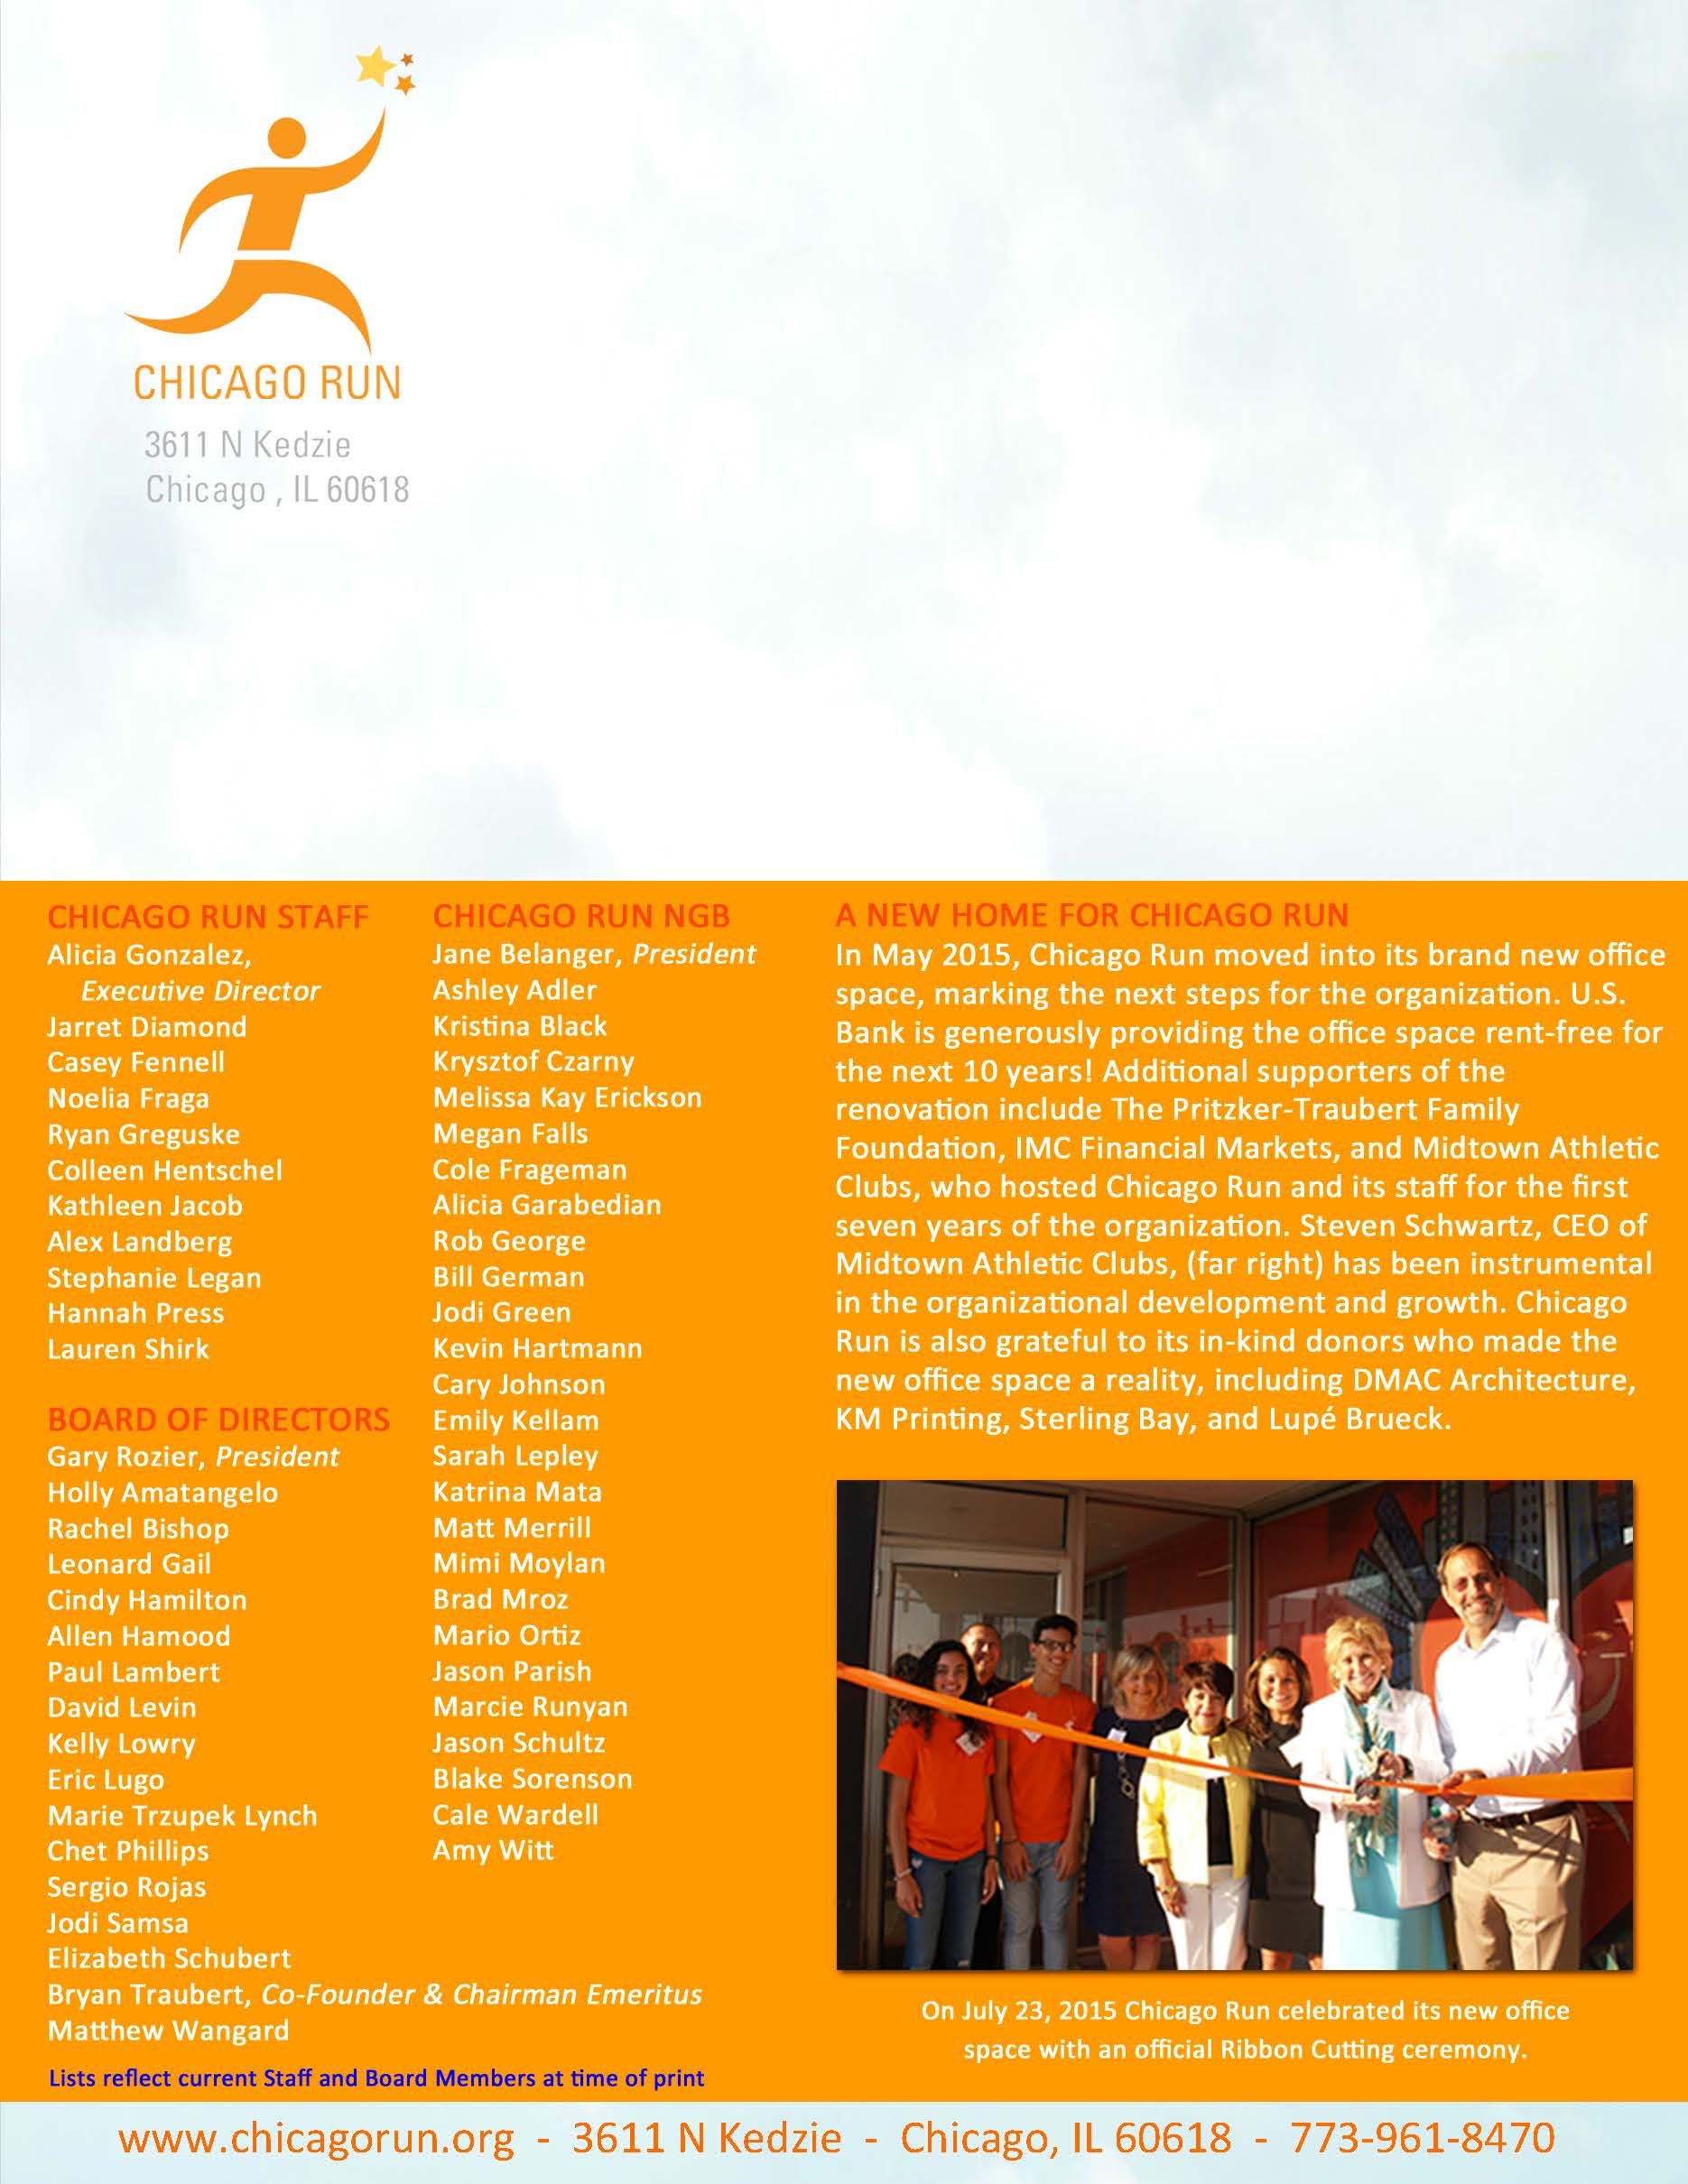 Page 15 - Back Cover (w staff_new office).jpg